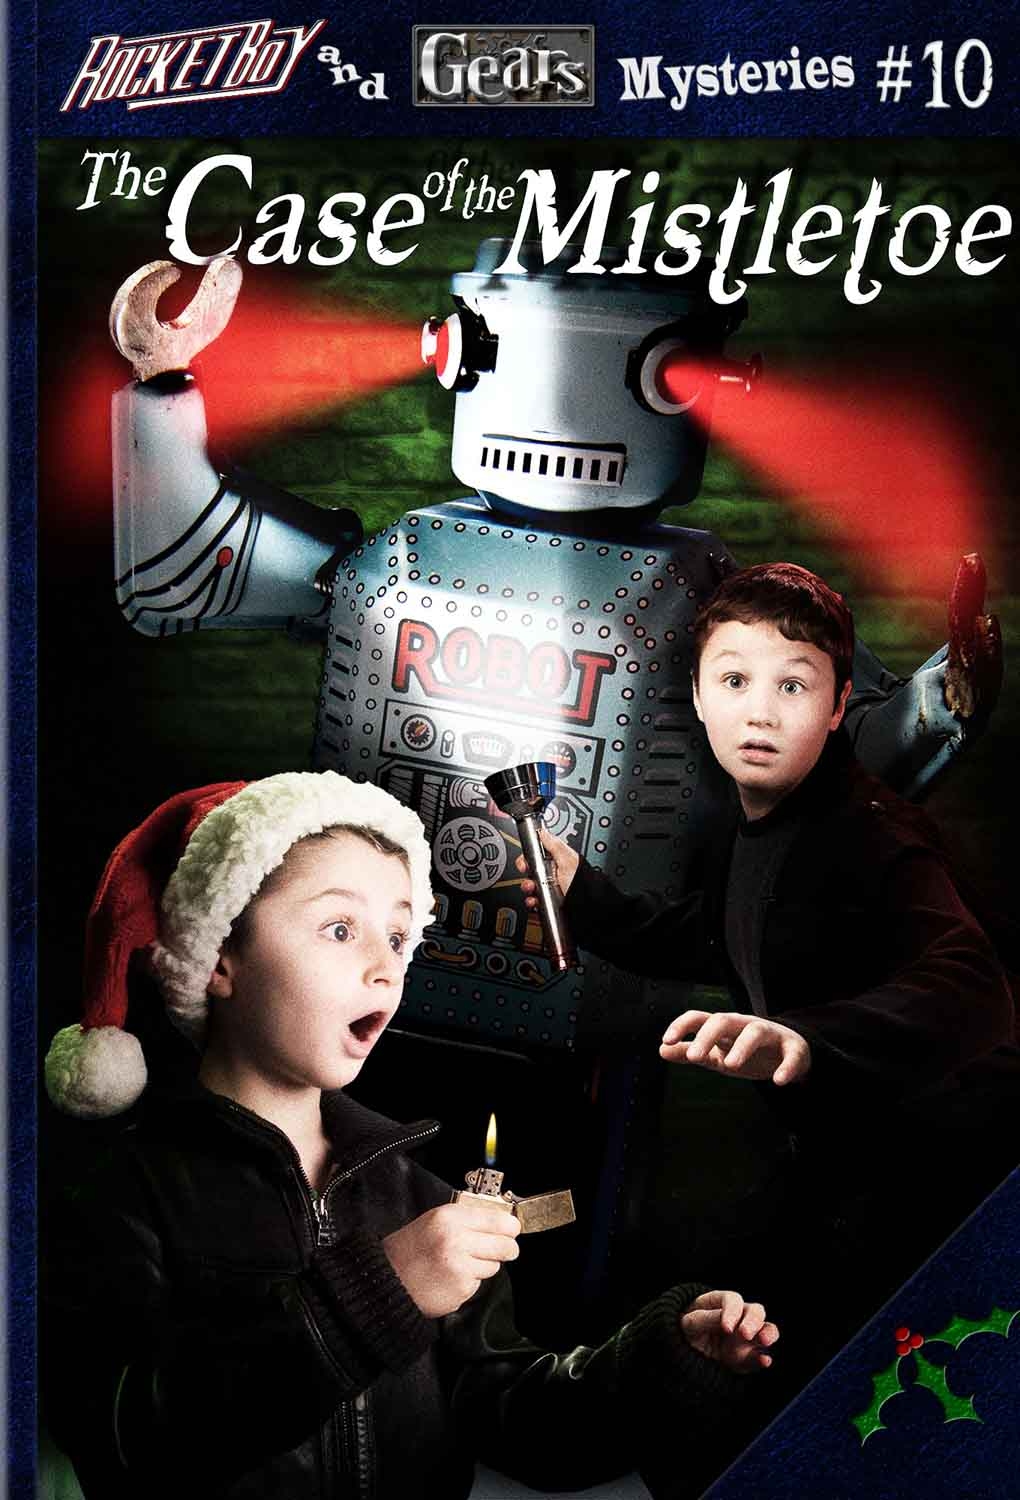 Rocketboy and Gears and the Case of the Mistletoe